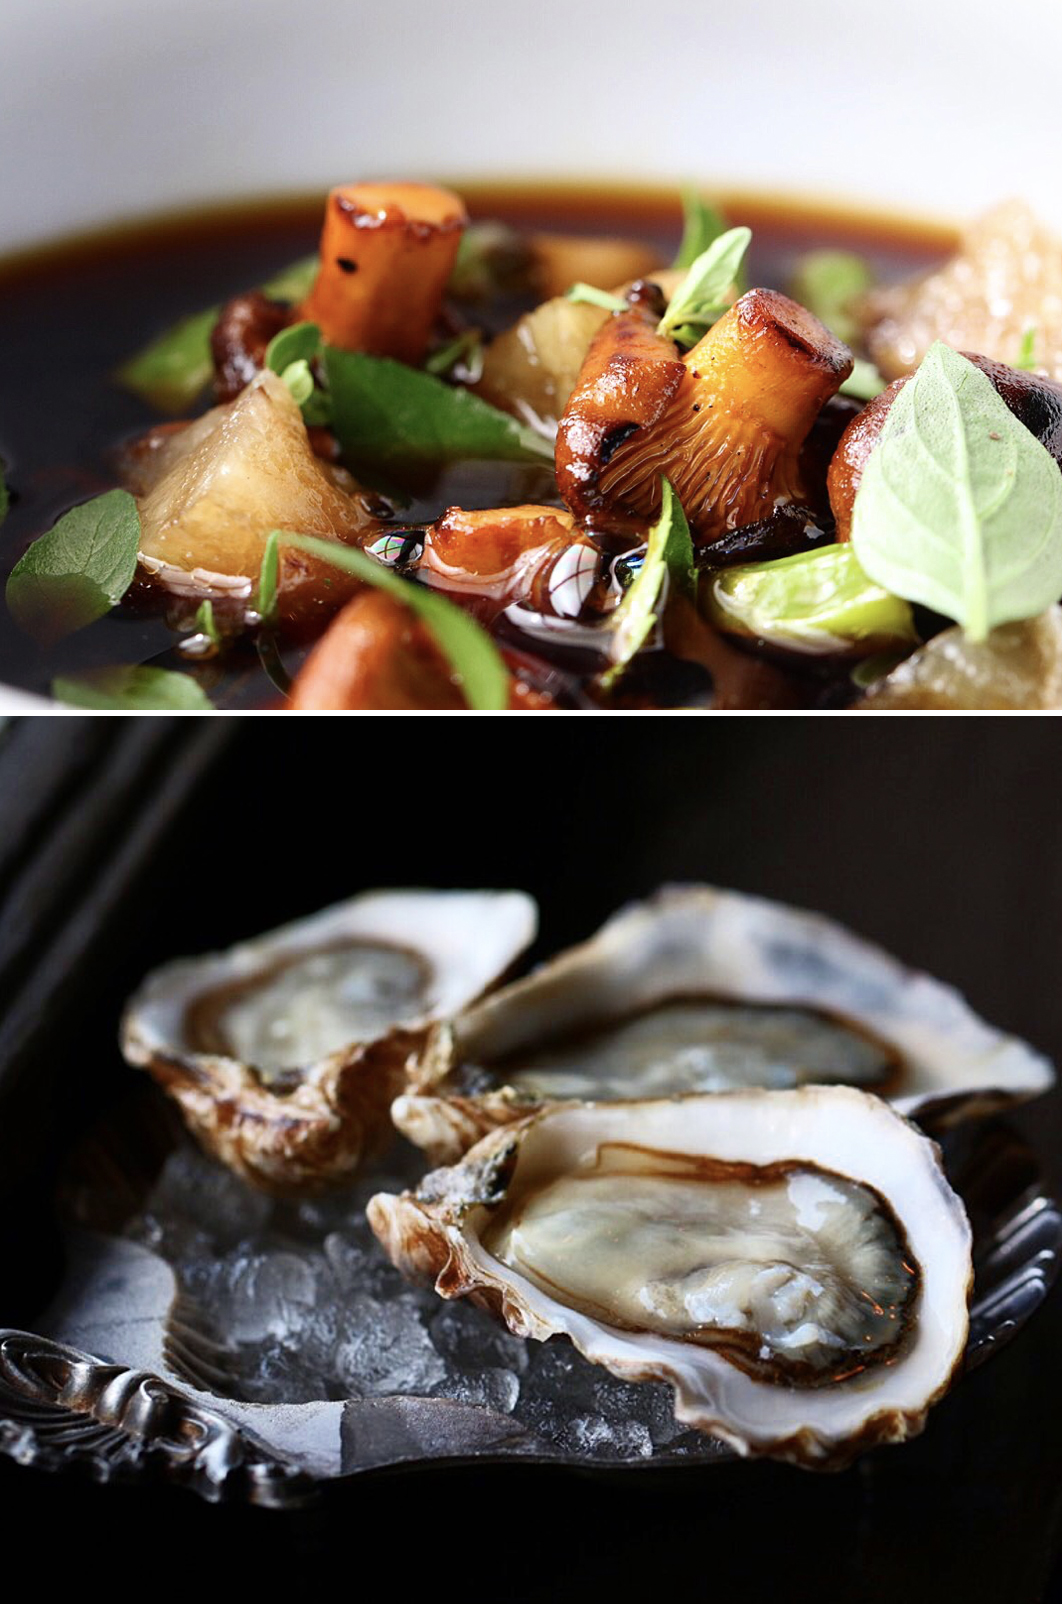 Mushrooms and mussels - catering food